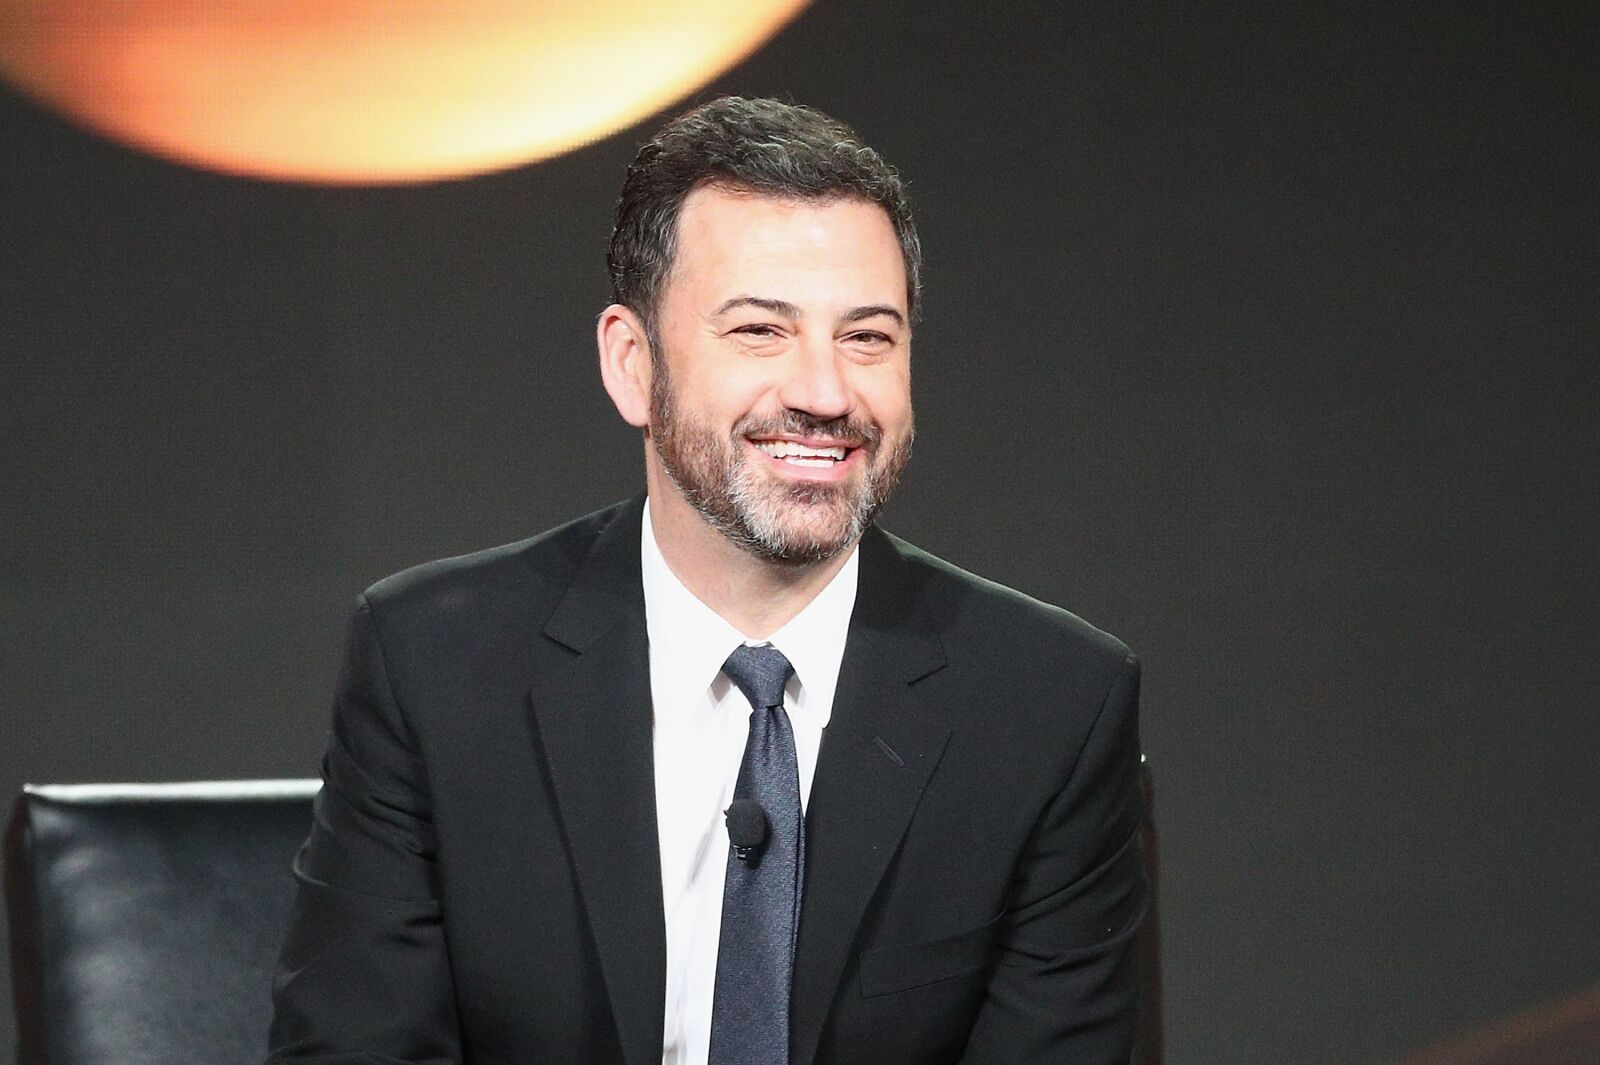 Jimmy Kimmel marks Donald Trump's 13,000th lie while president